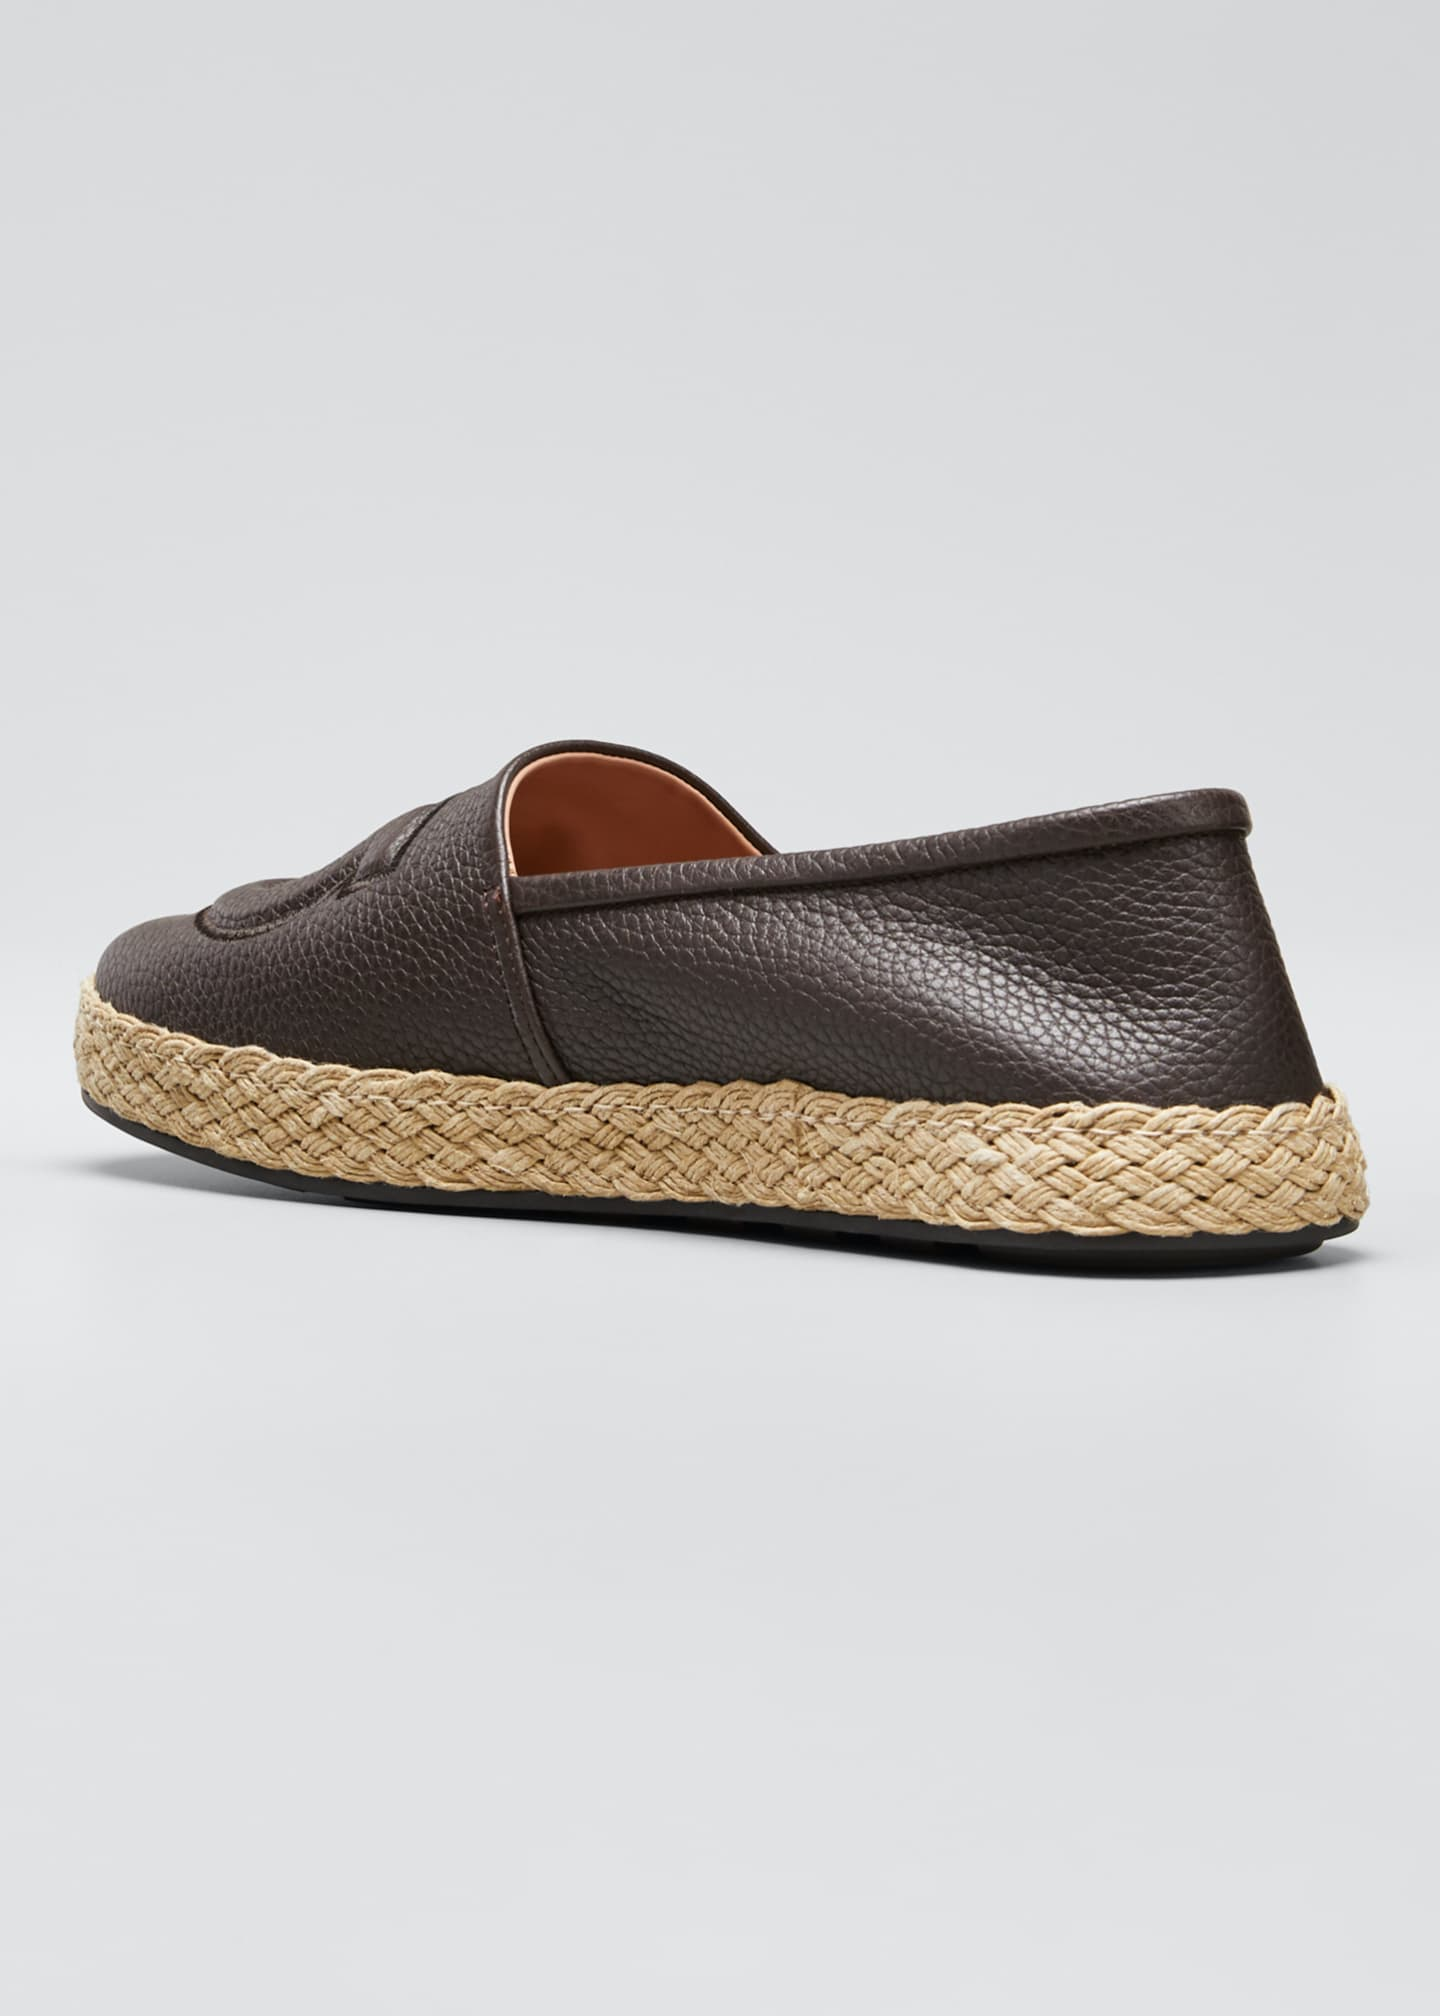 Image 4 of 5: Men's Summer Gancio Leather Espadrilles